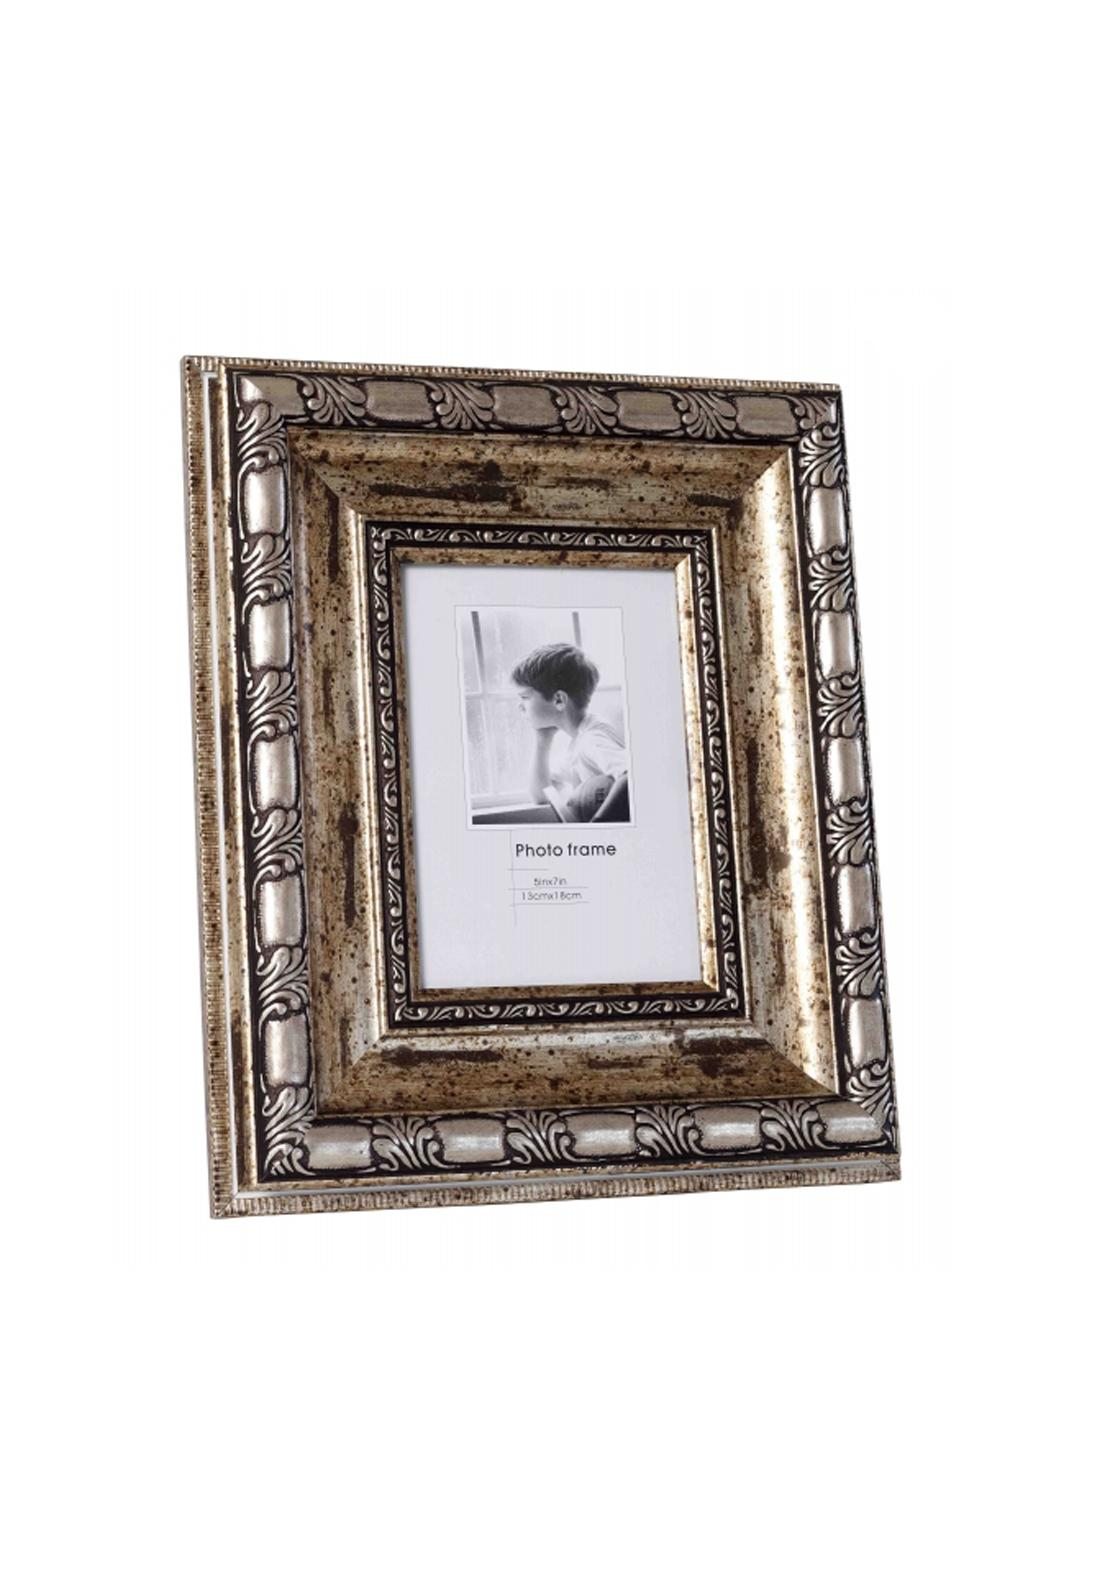 Mindy Brownes Castle Photo Frame, 5 x 7 inches